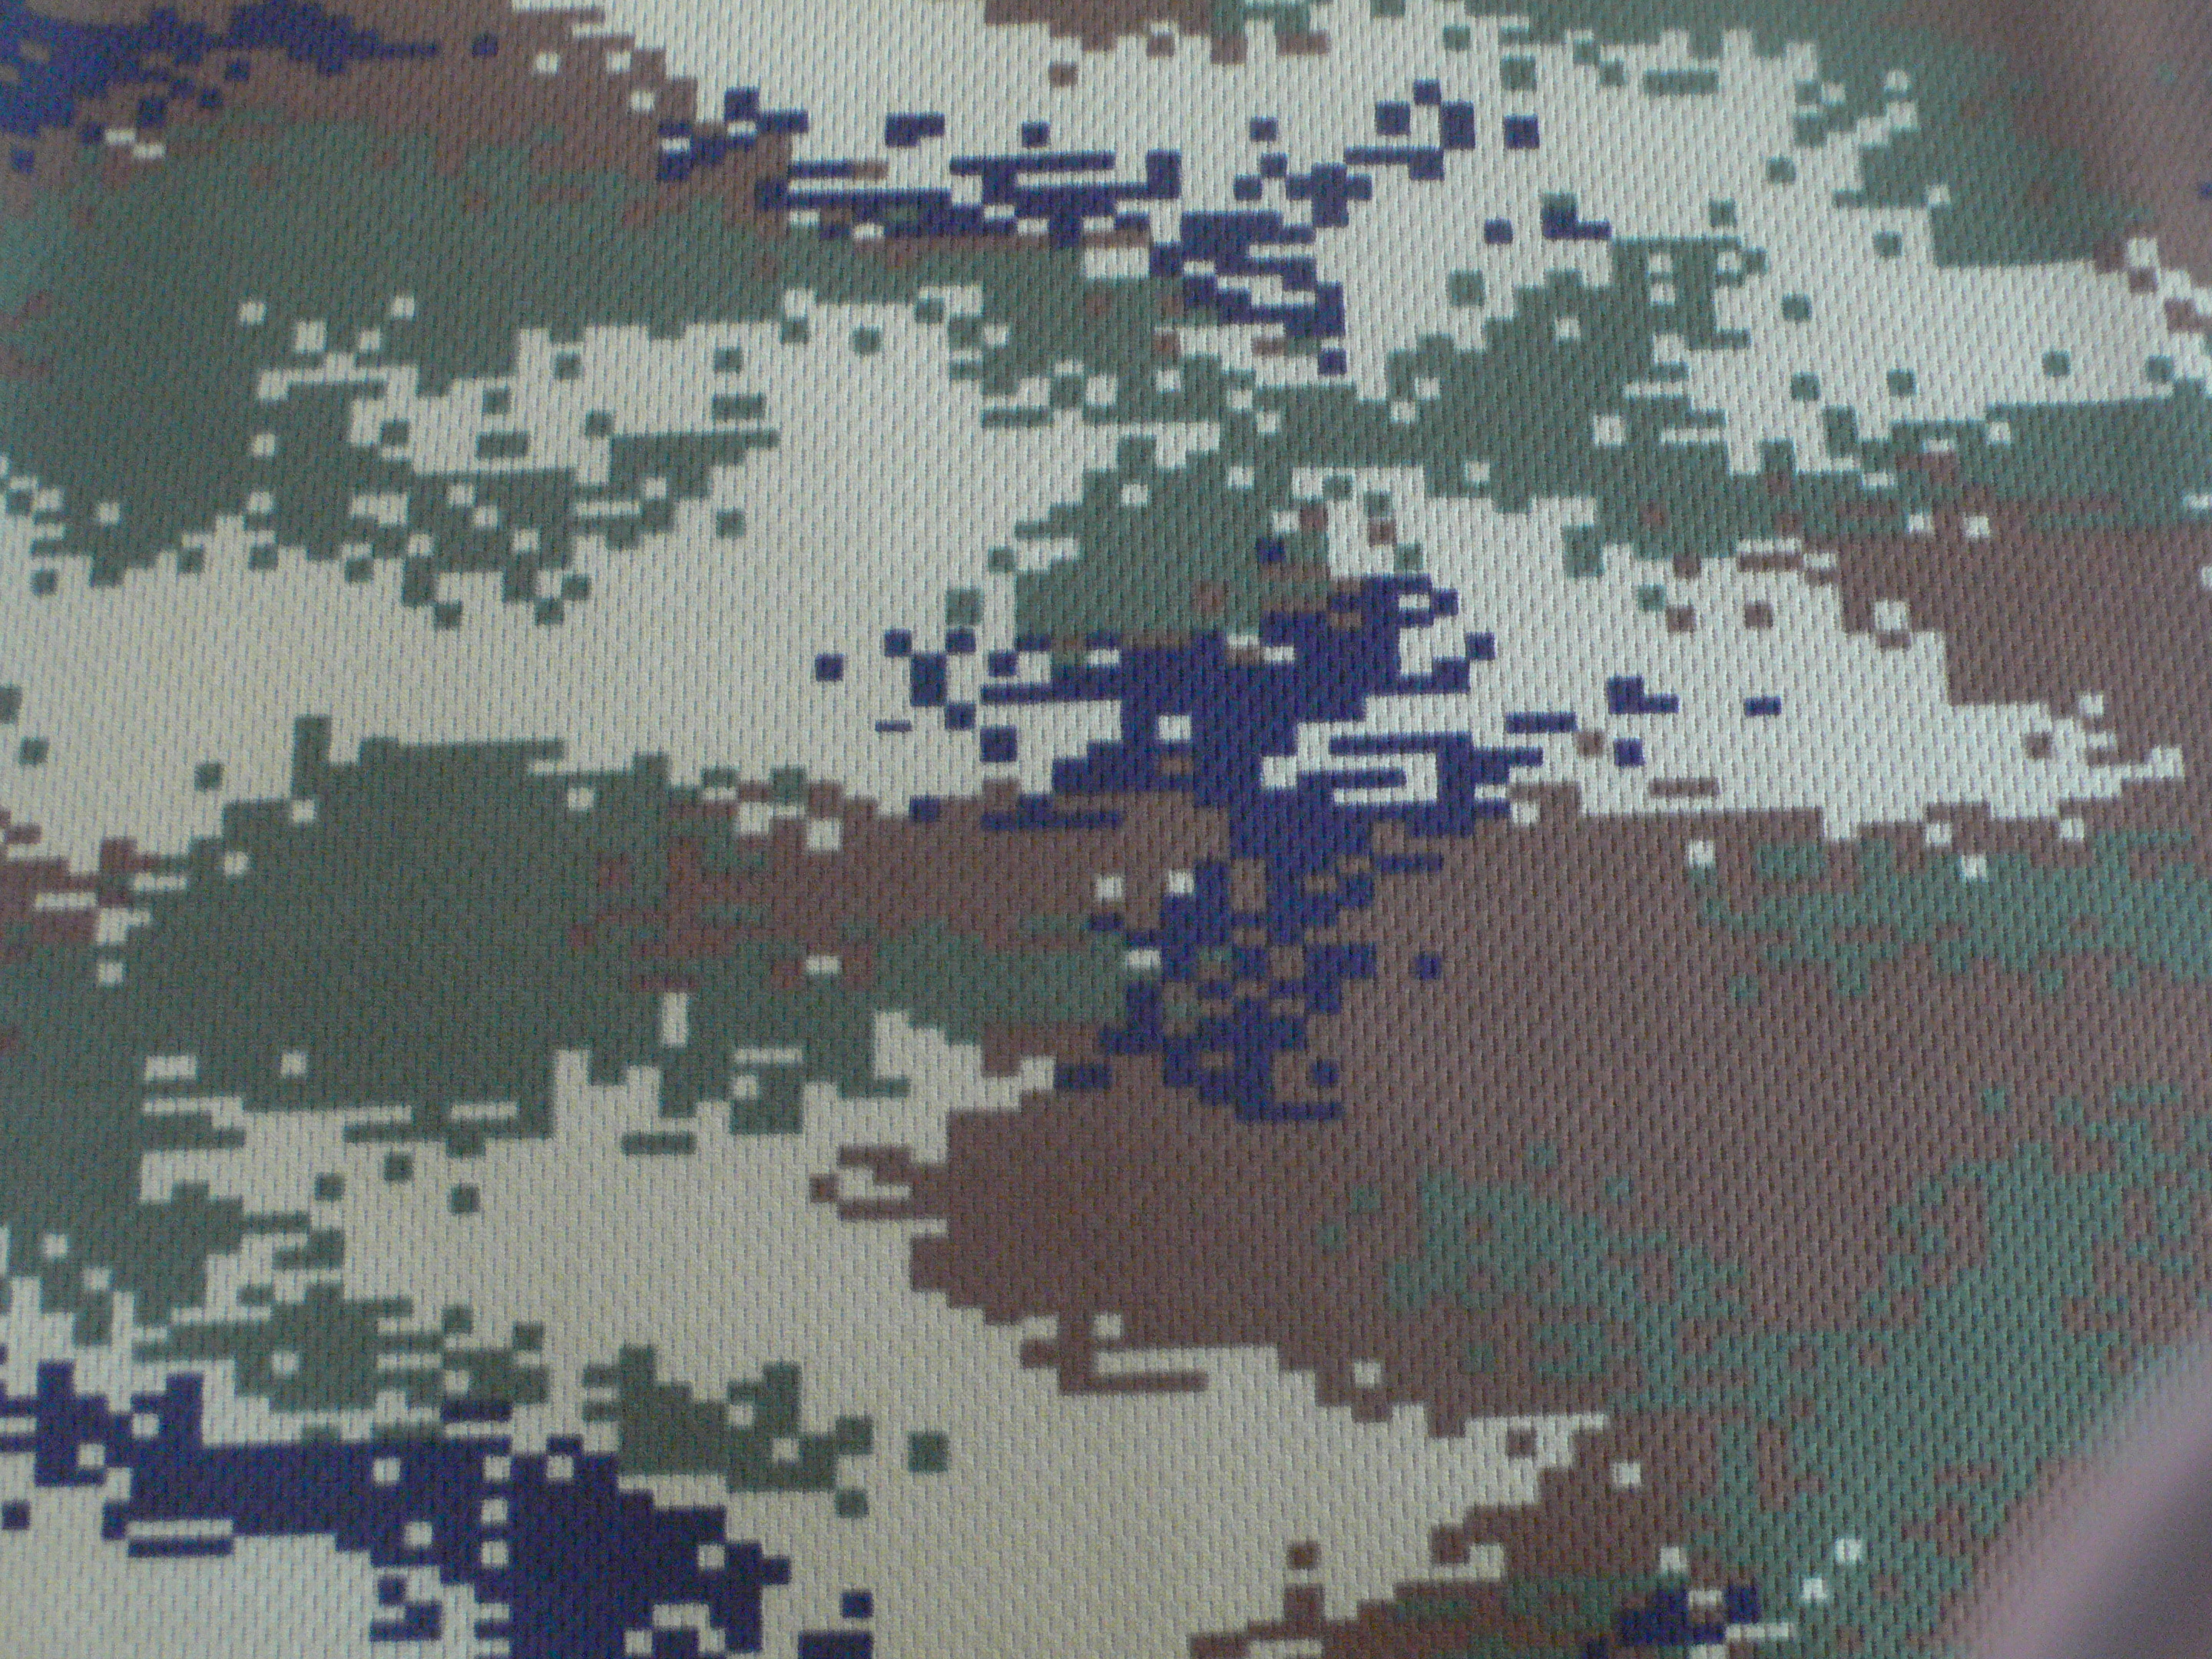 Knitting Camouflage Polyester Fabric for T-shirt with Good Water Absorption